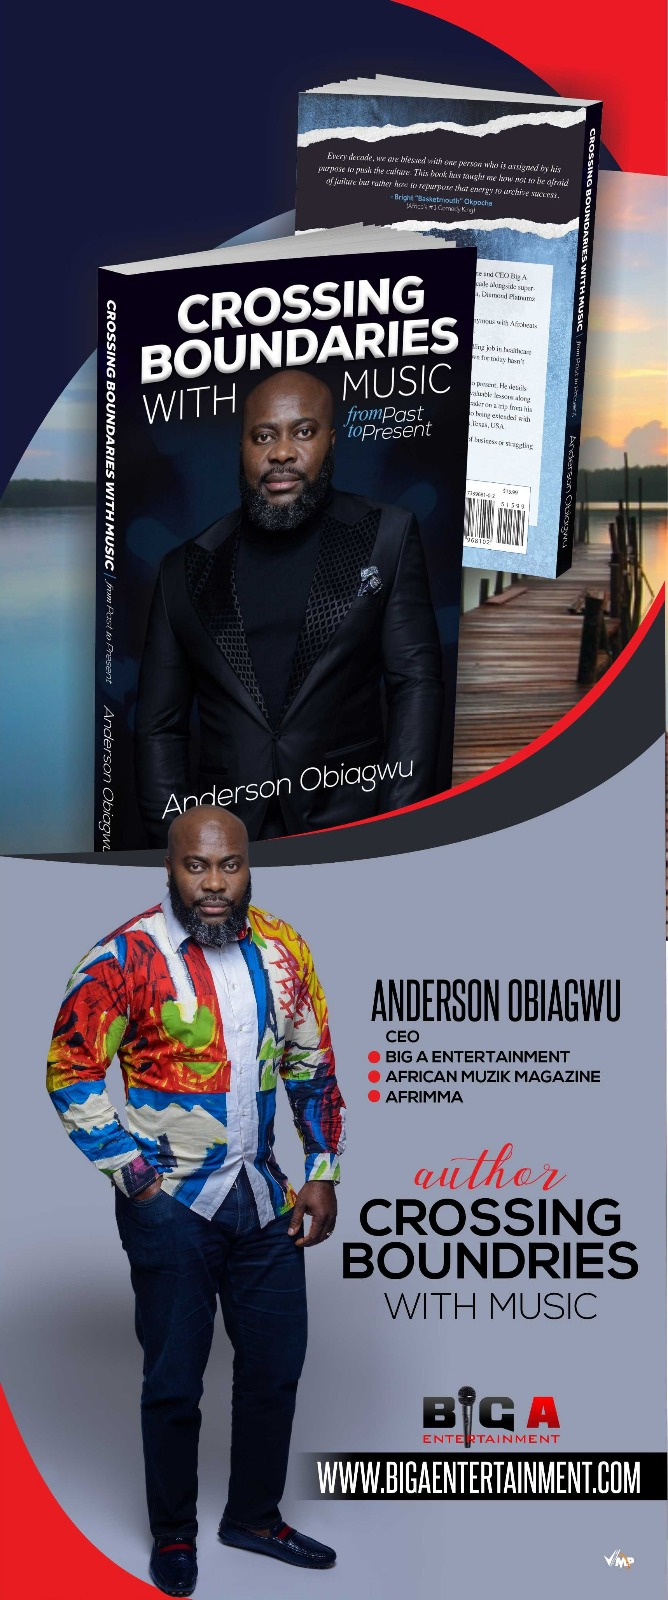 Anderson Obiagwu, Big A Entertainment, Crossing Boundaries With Music, From Past to Present,